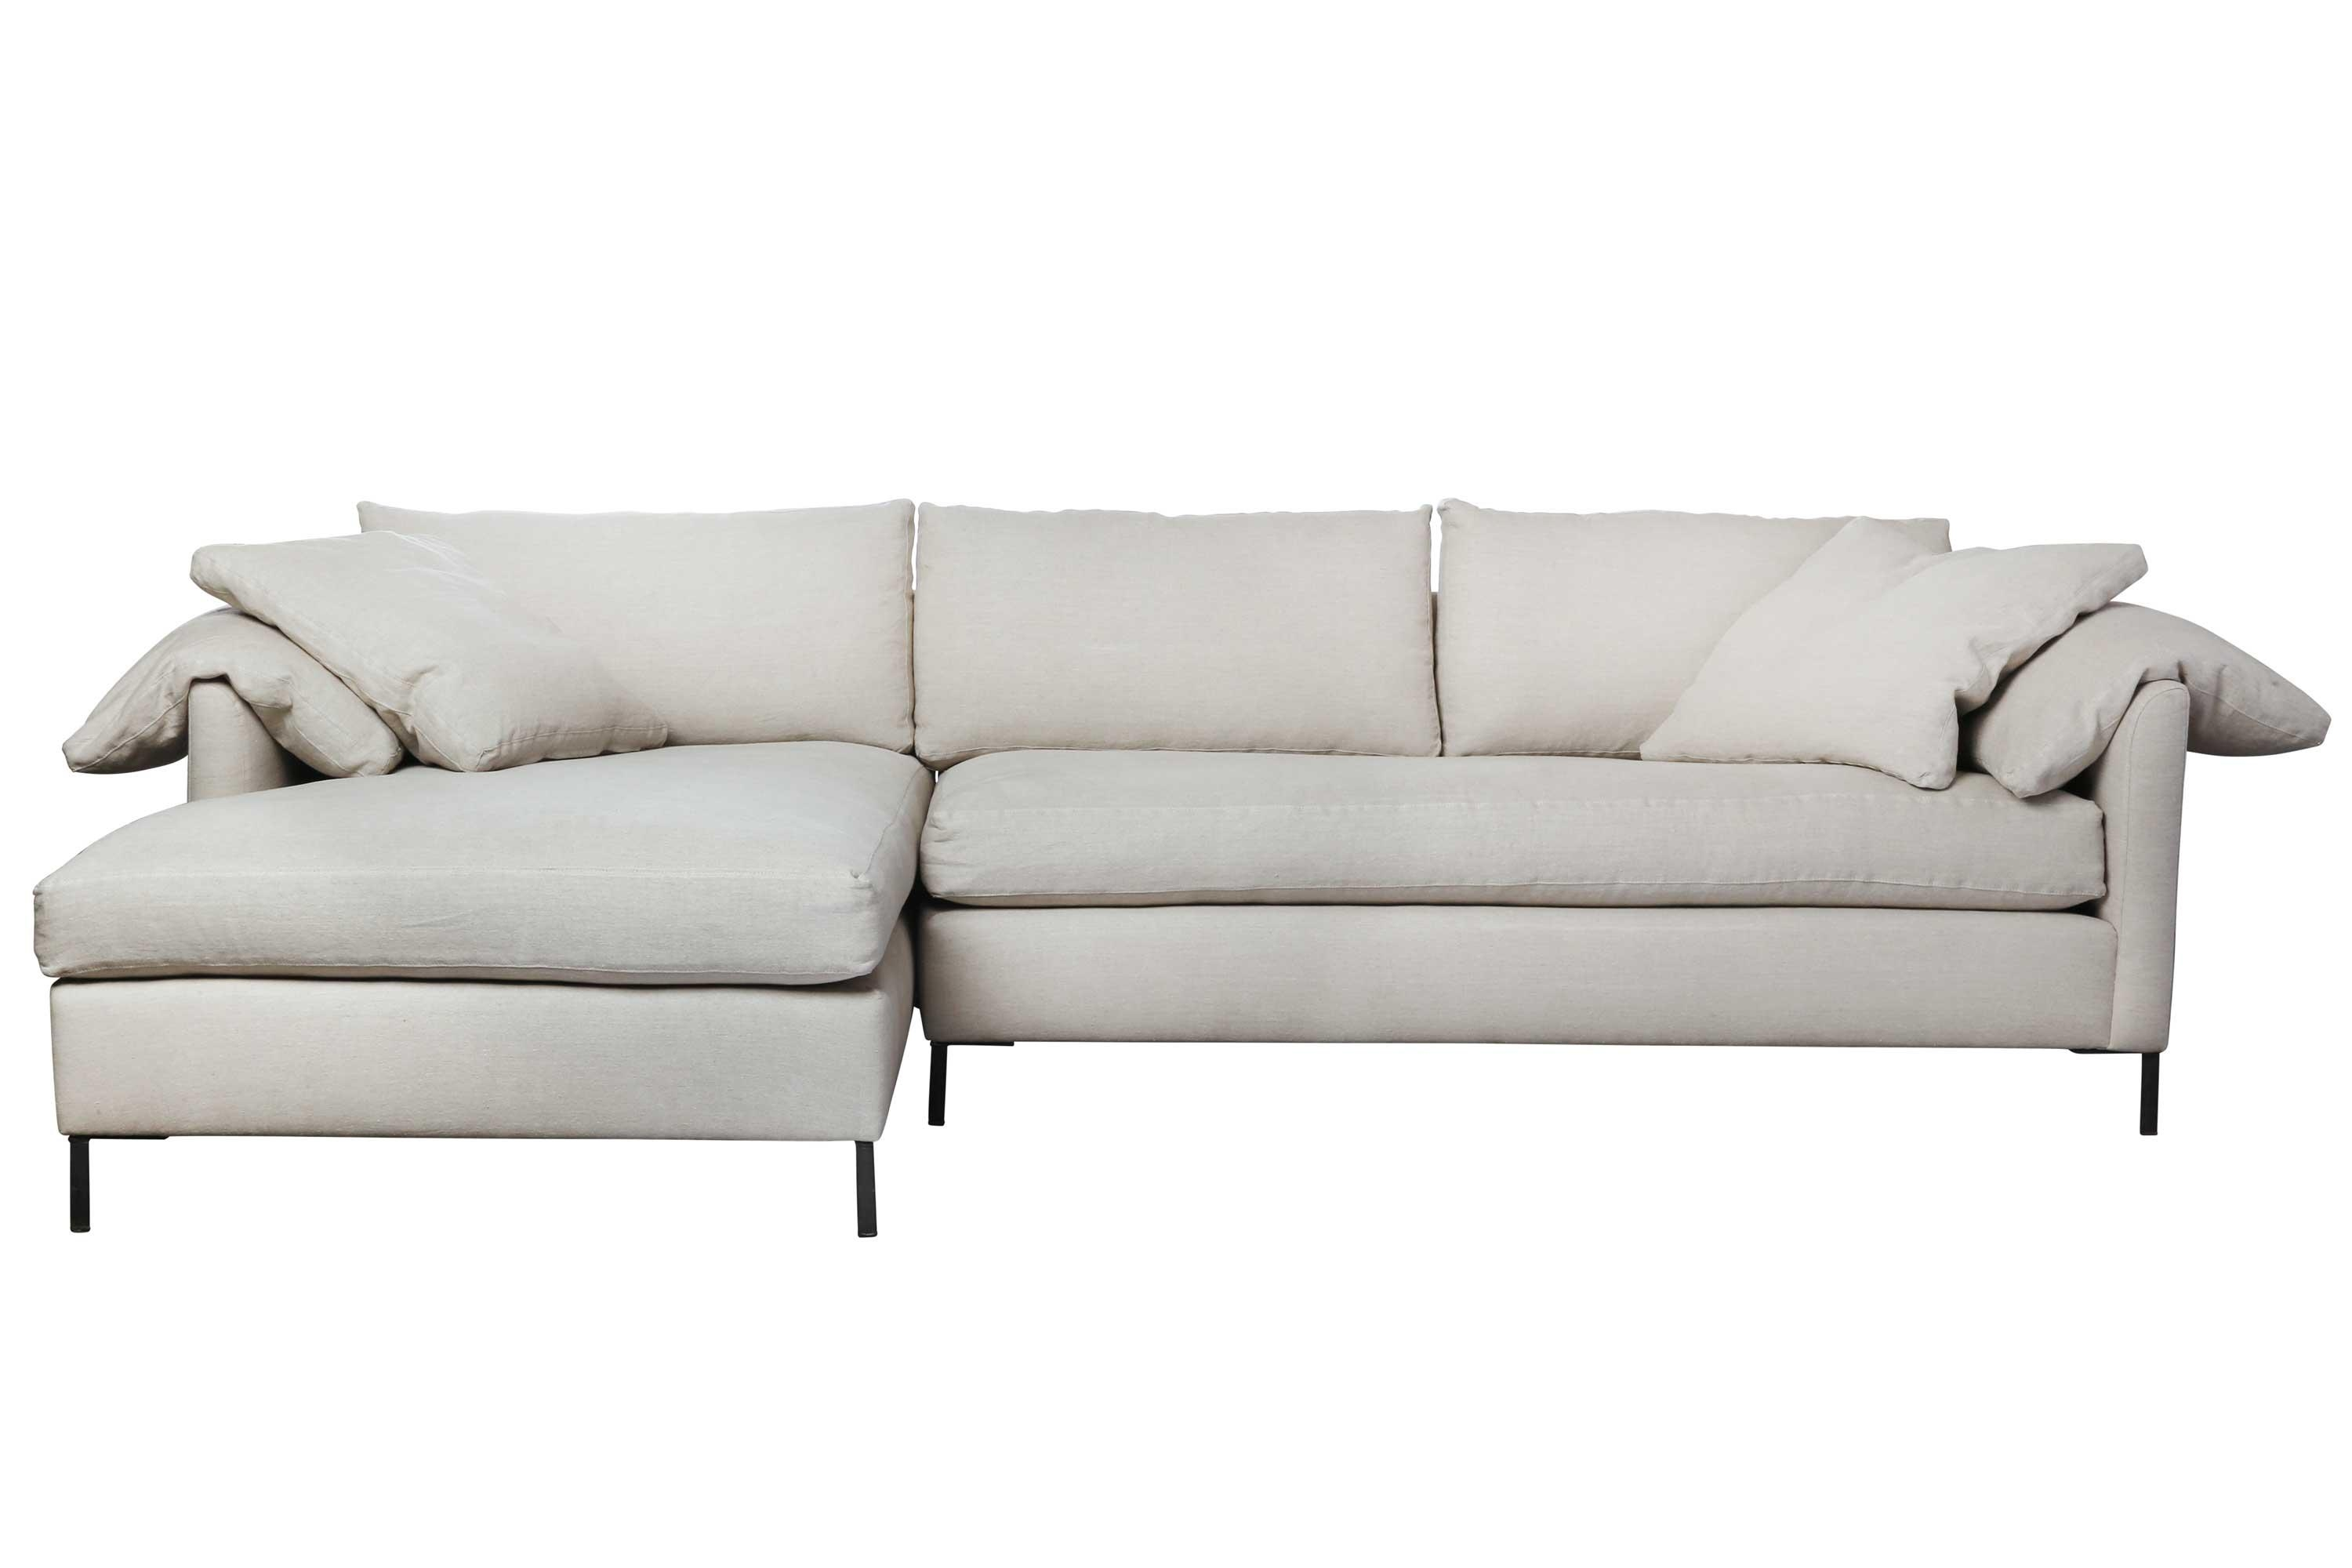 2Pc Sectional Regarding Cisco Brothers Sofas (Image 1 of 20)